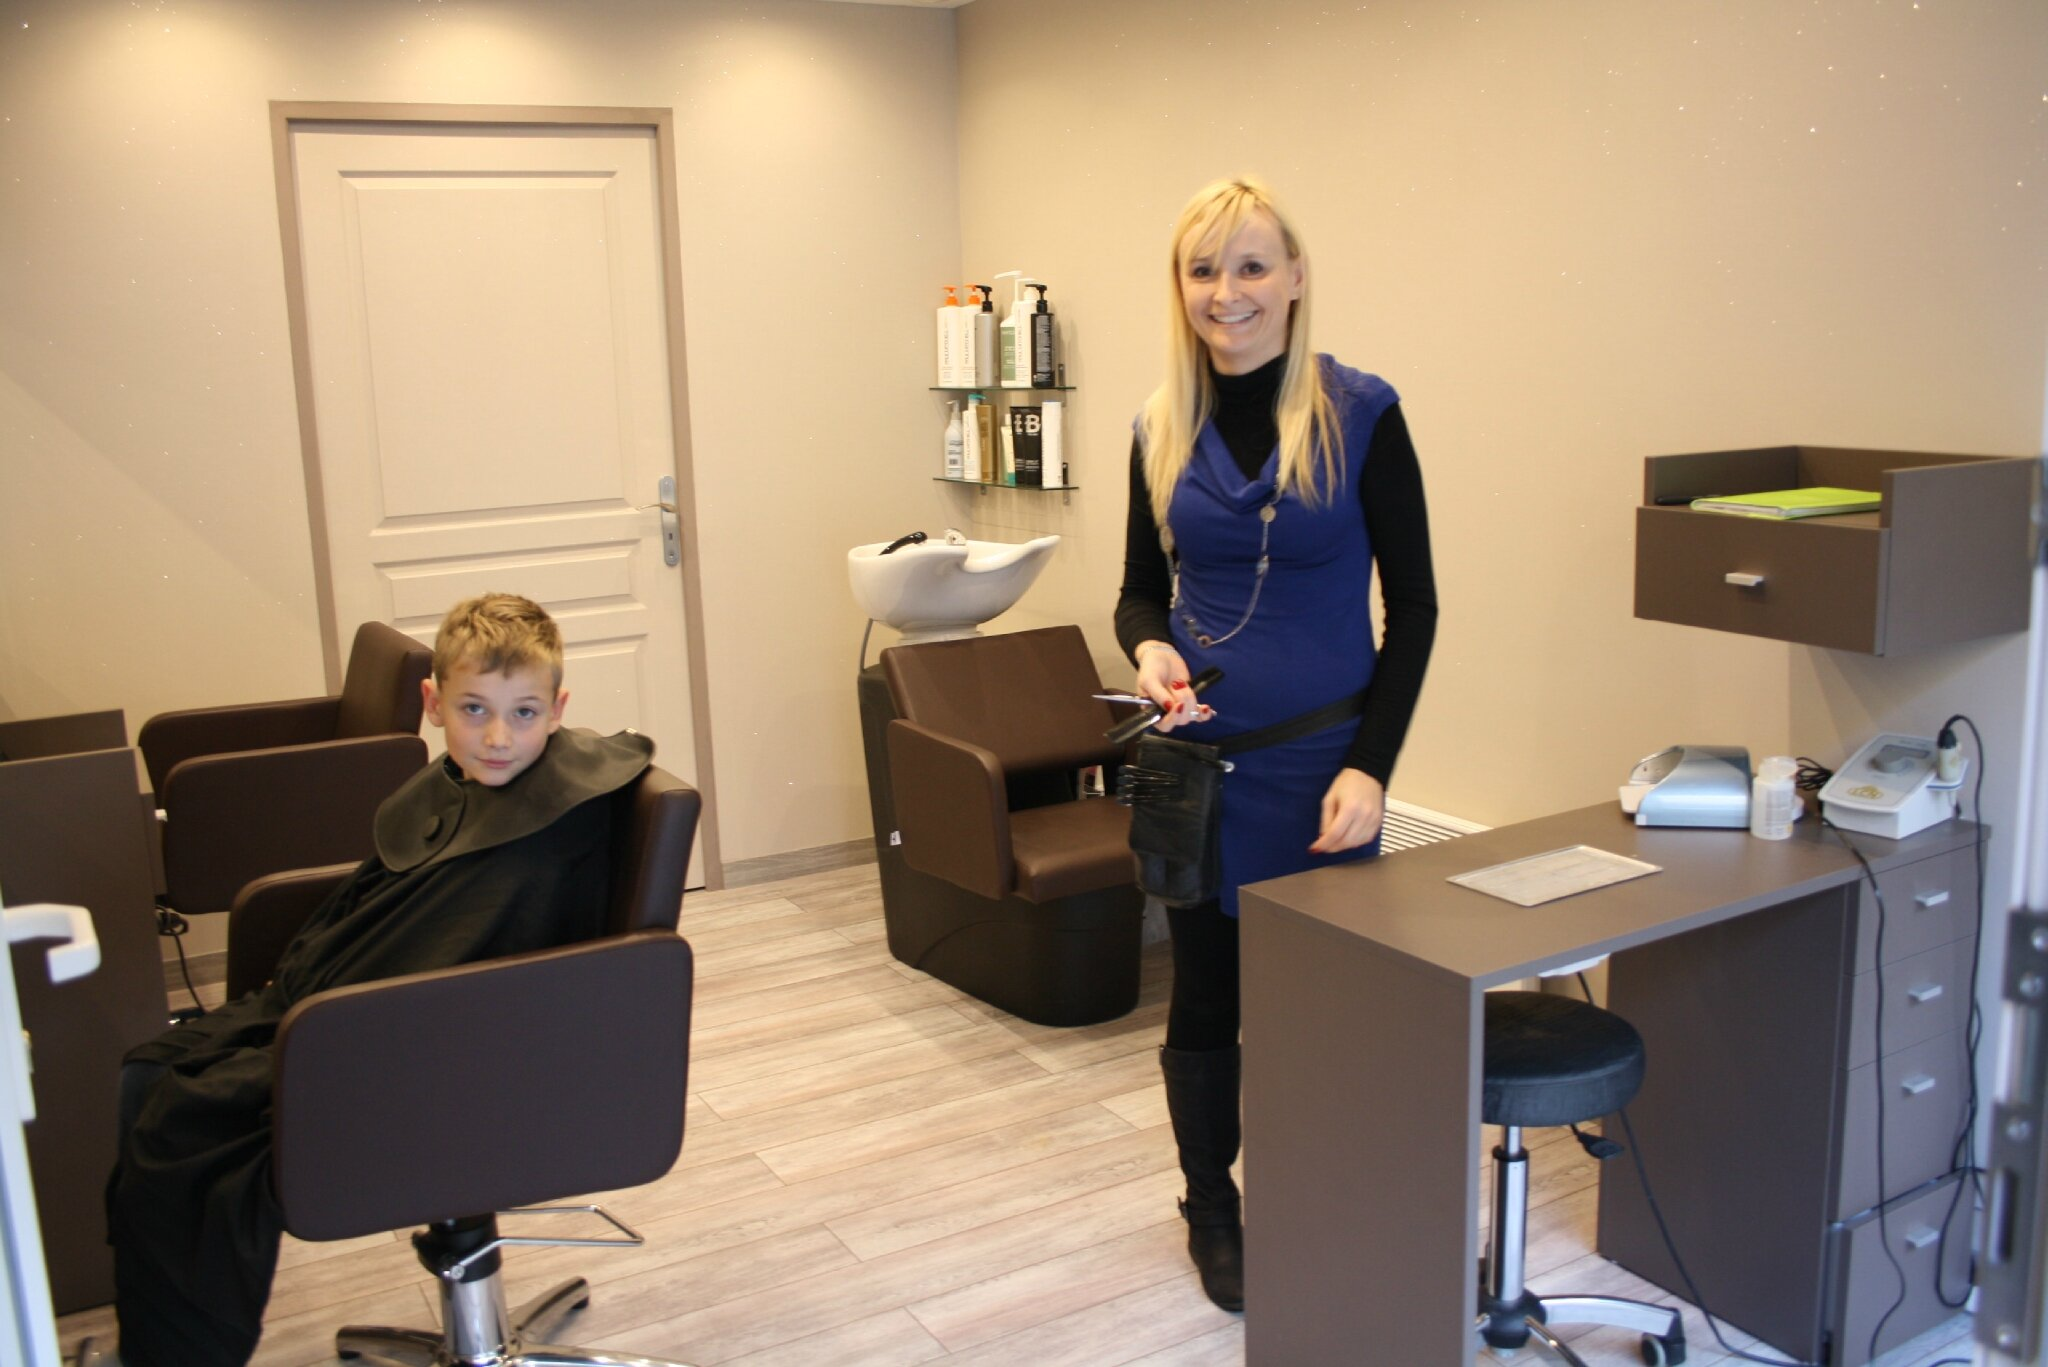 Un salon de coiffure a bourbach le haut commune de for Le salon coiffeur